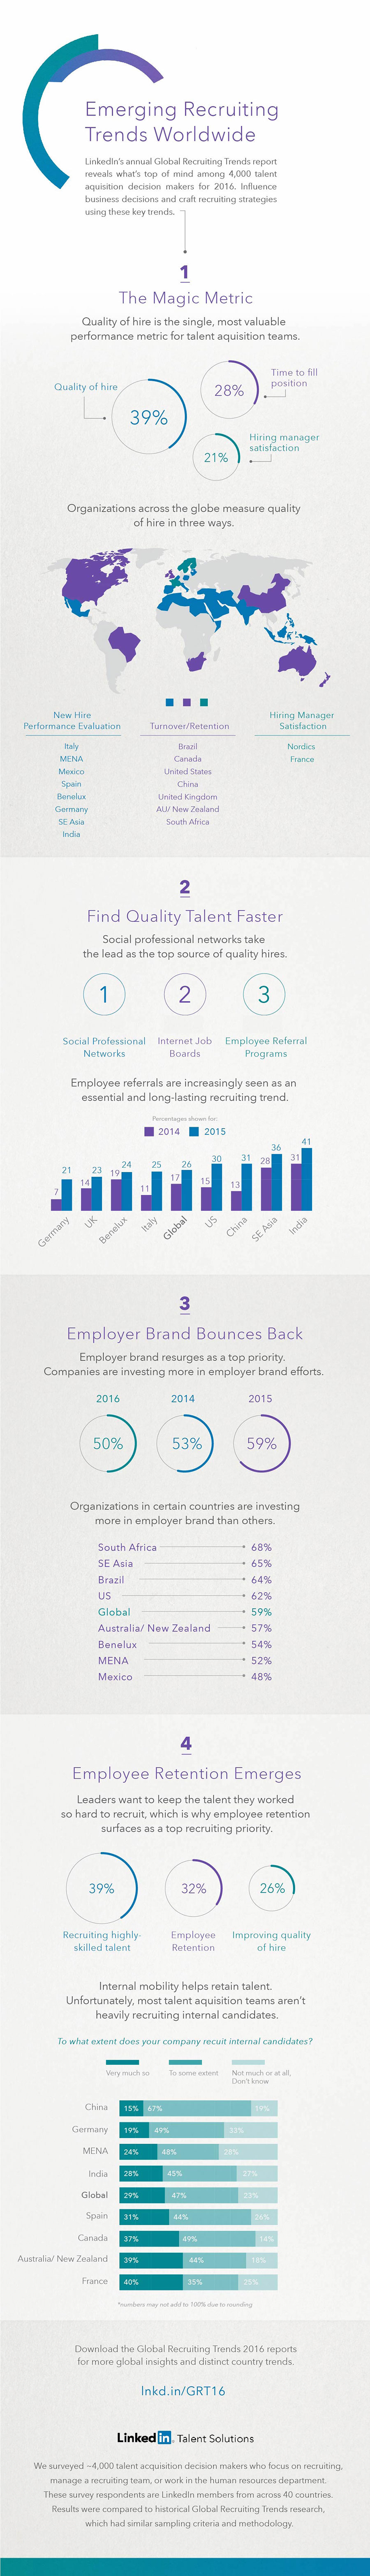 global-recruiting-trends-2016-infographic